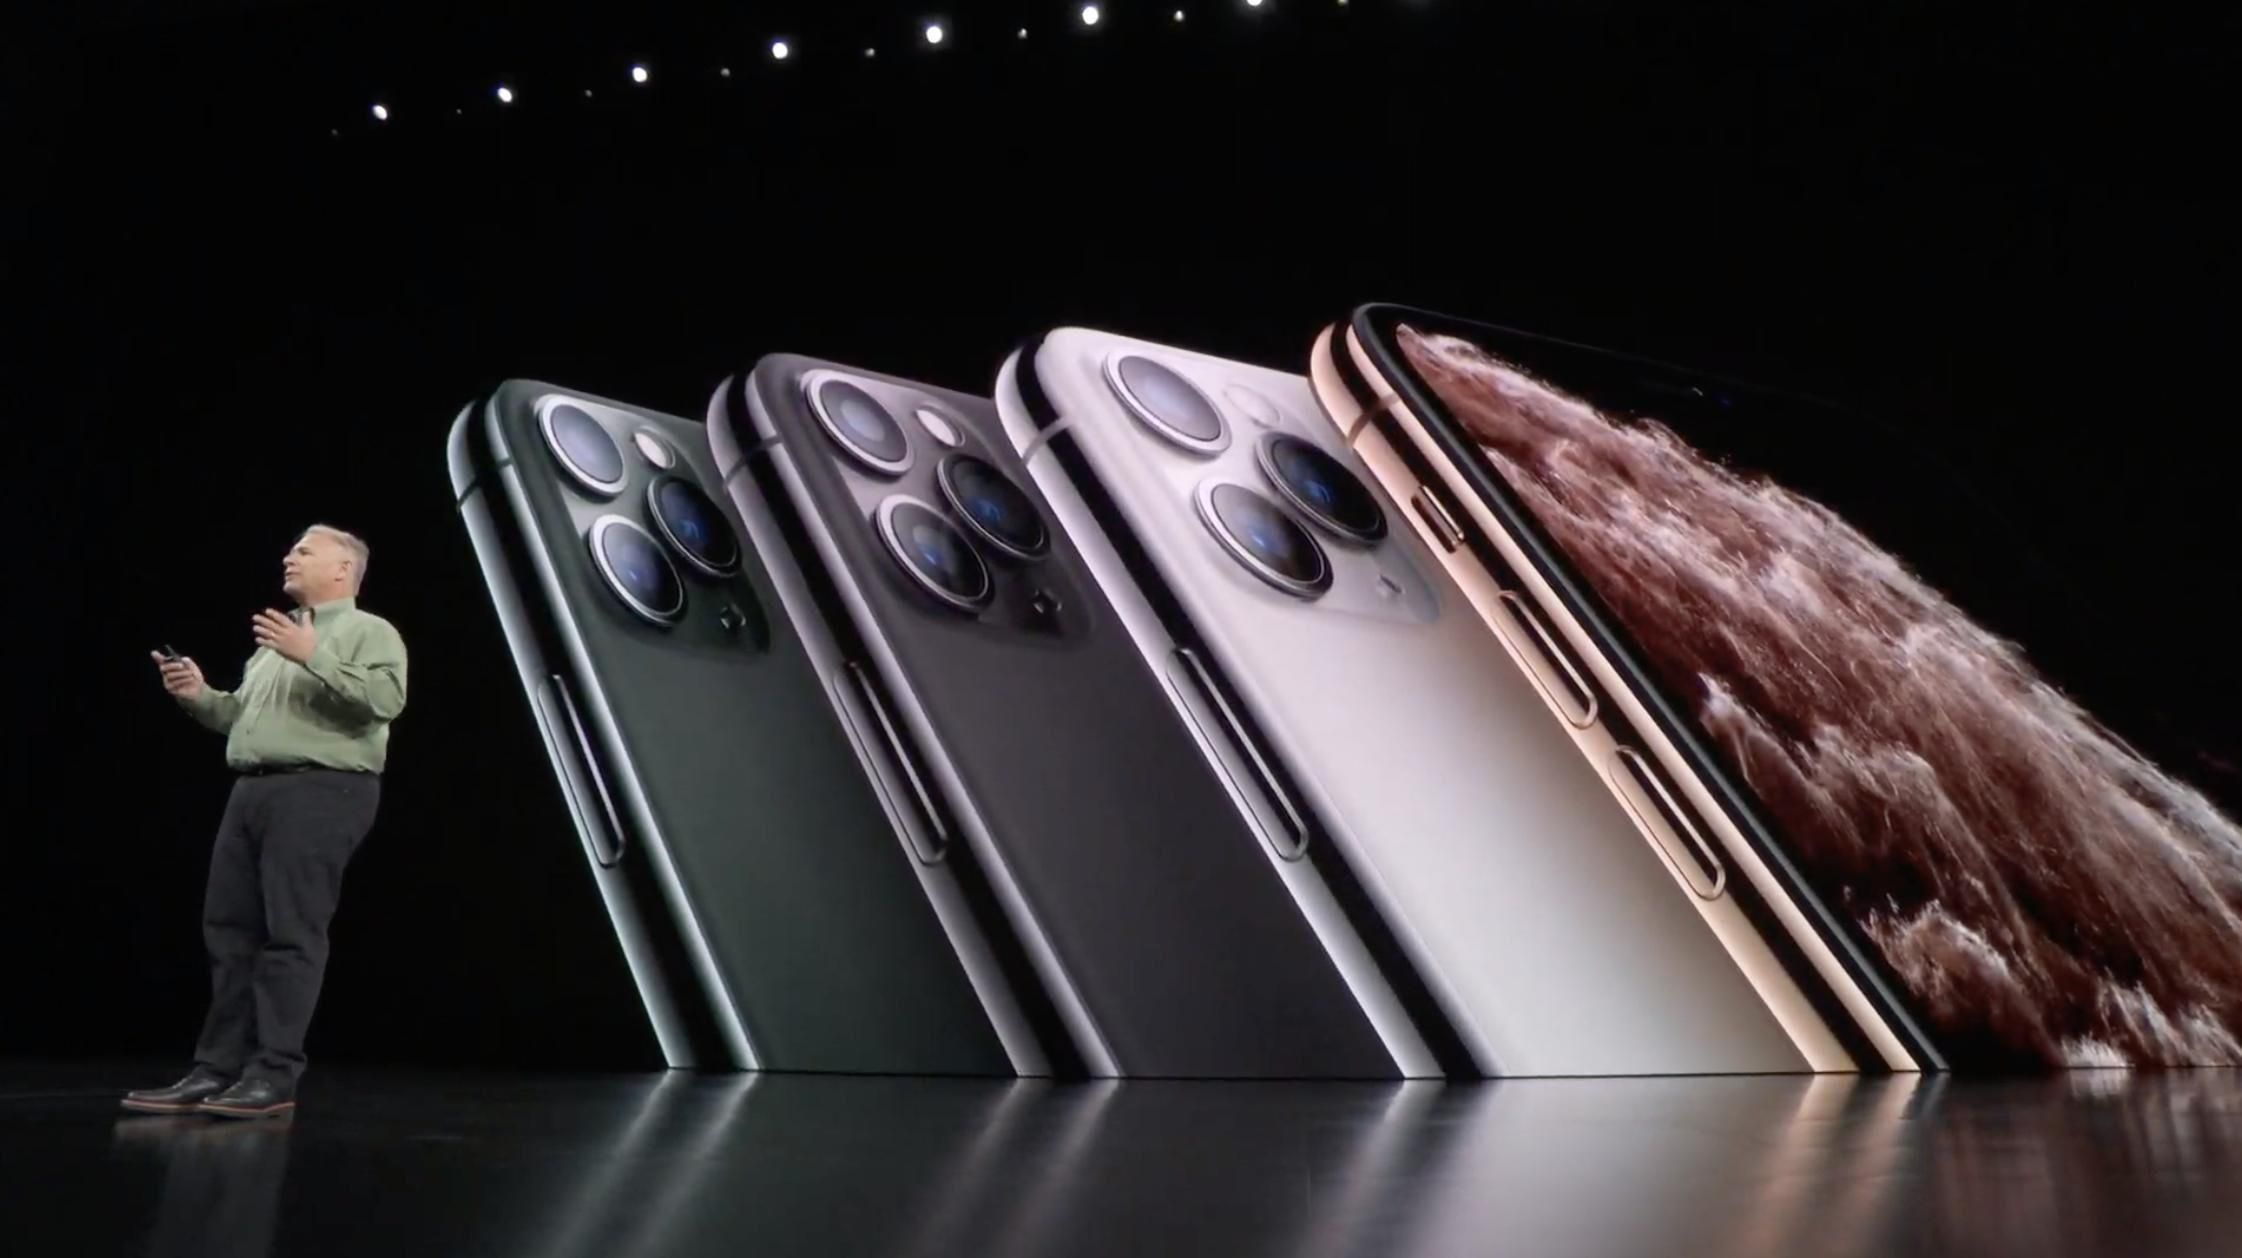 03-iphone-11-pro-at-event